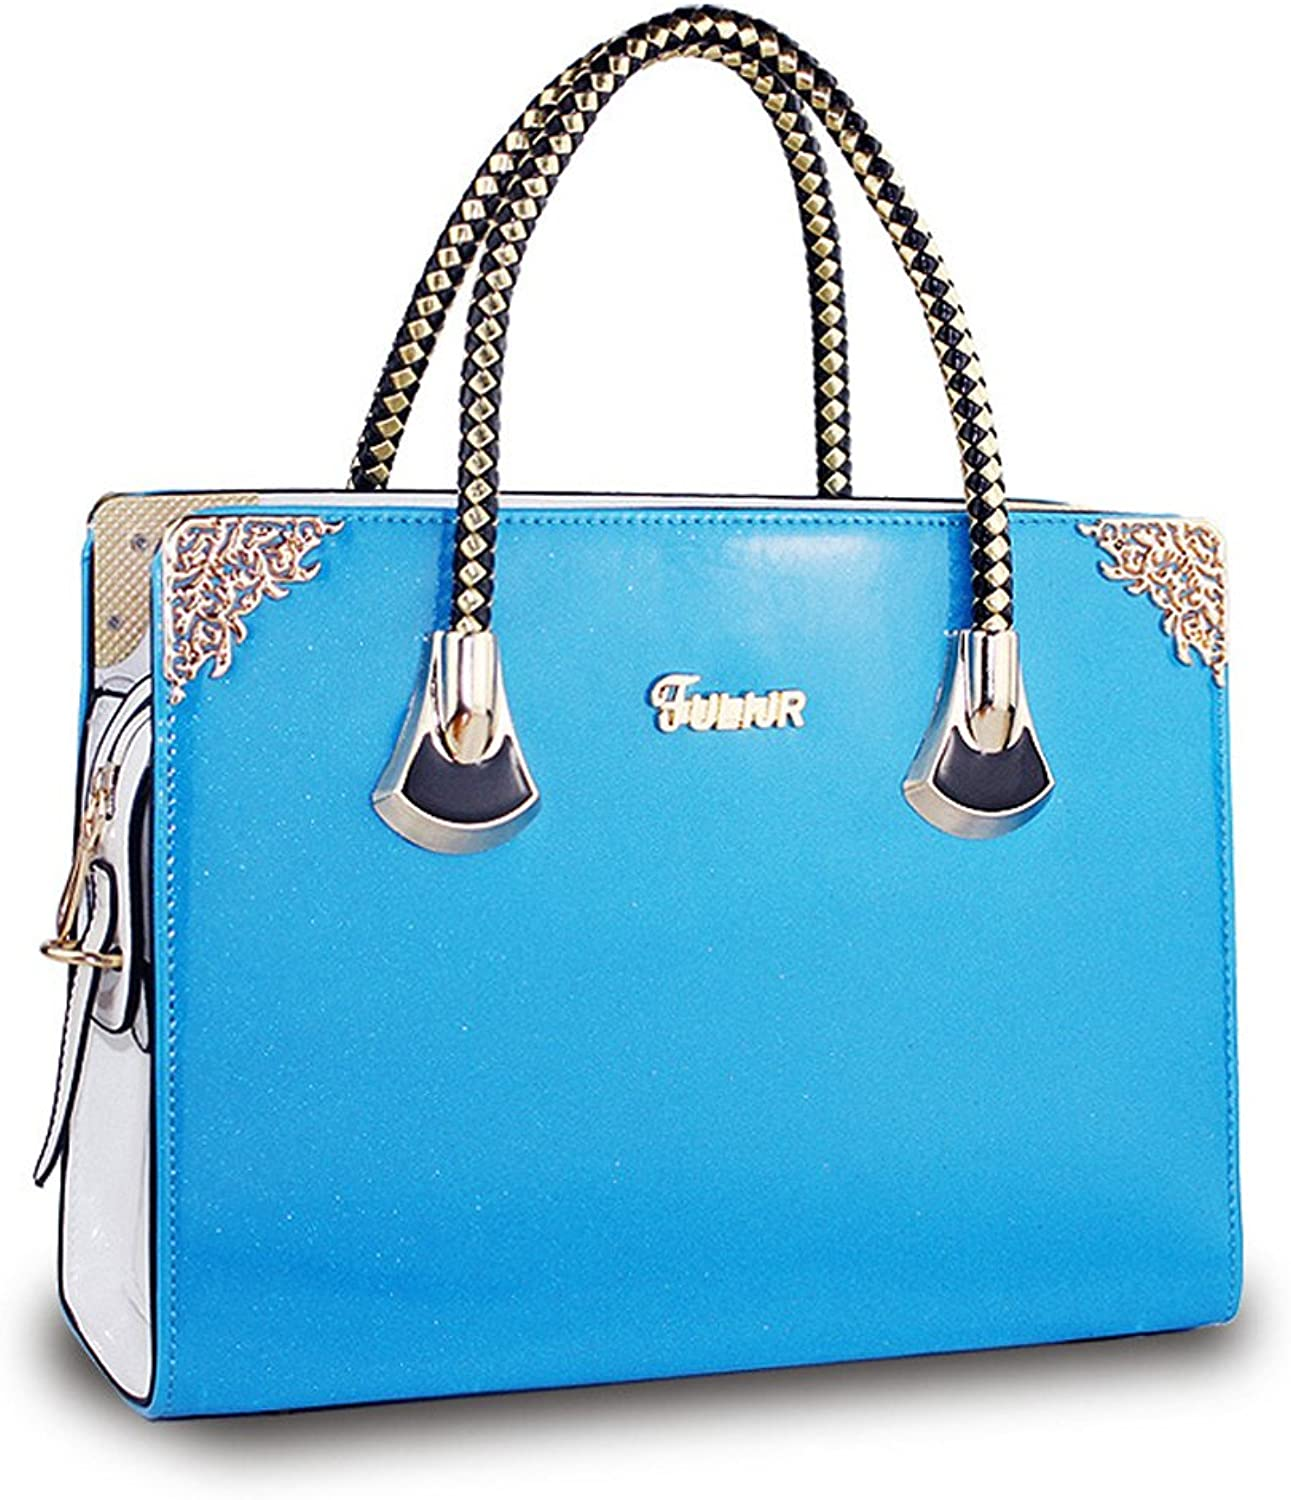 Fleeting Time Women's New Air Bag Ladies Bright Pearl Jelly Bag